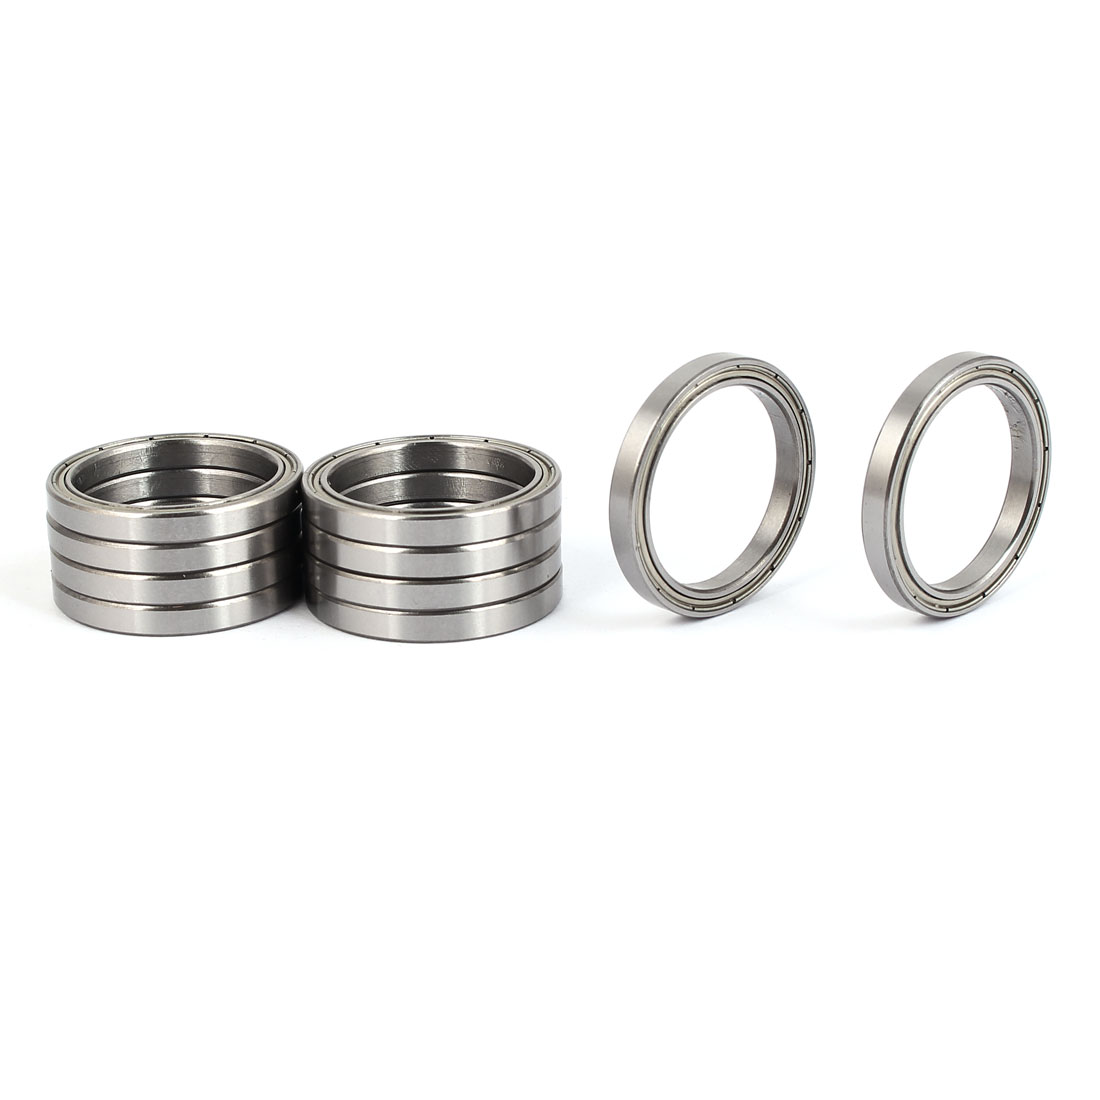 ZZ6705 Deep Groove Ball Bearing 32mm OD 25mm Bore Diameter 10pcs